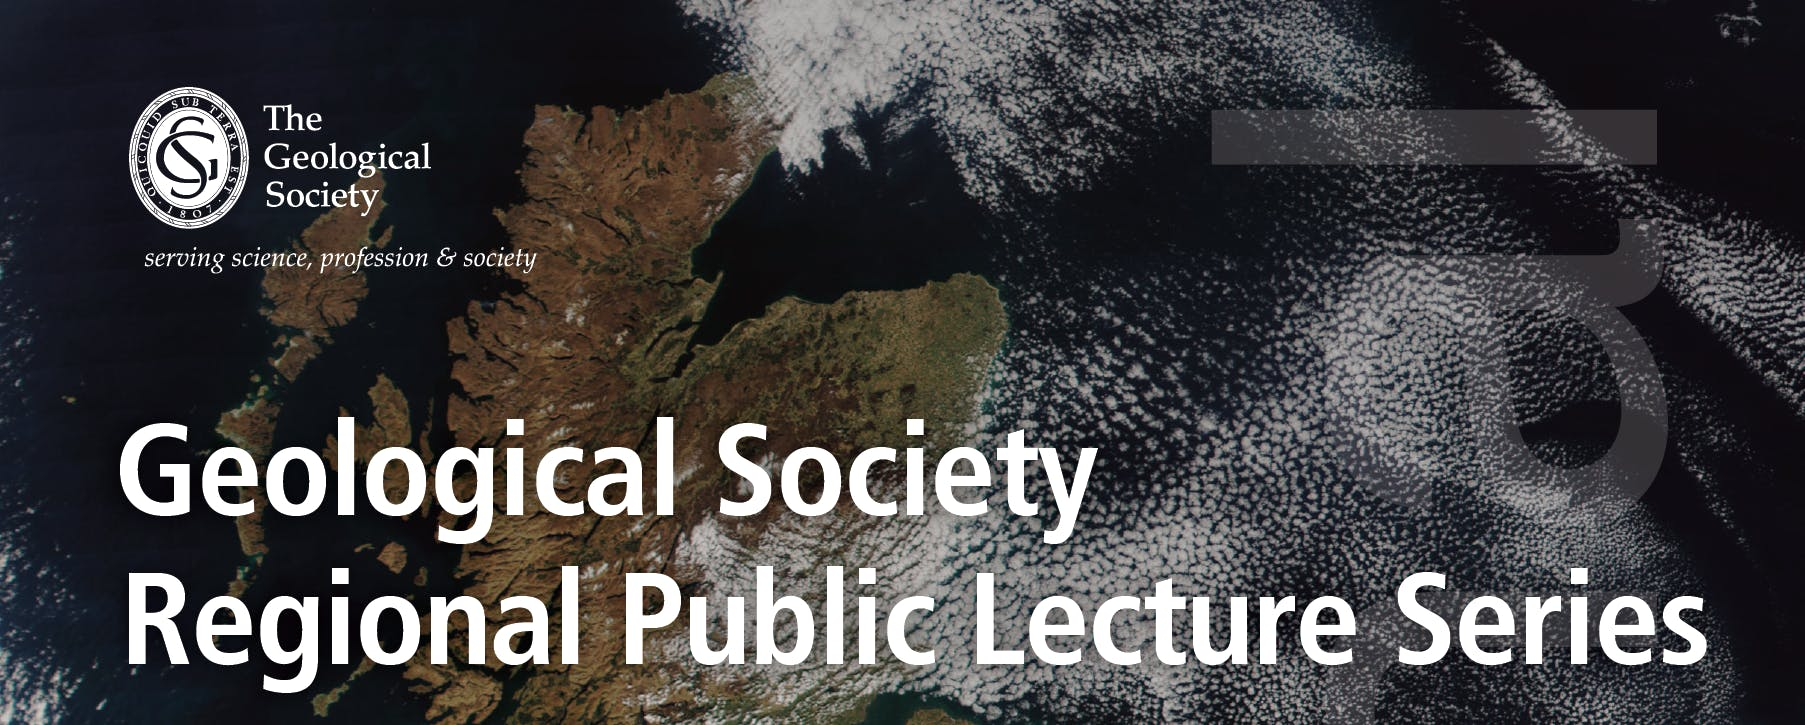 Geological Society Regional Lecture - Satellite Top Trumps : The Geological Edition